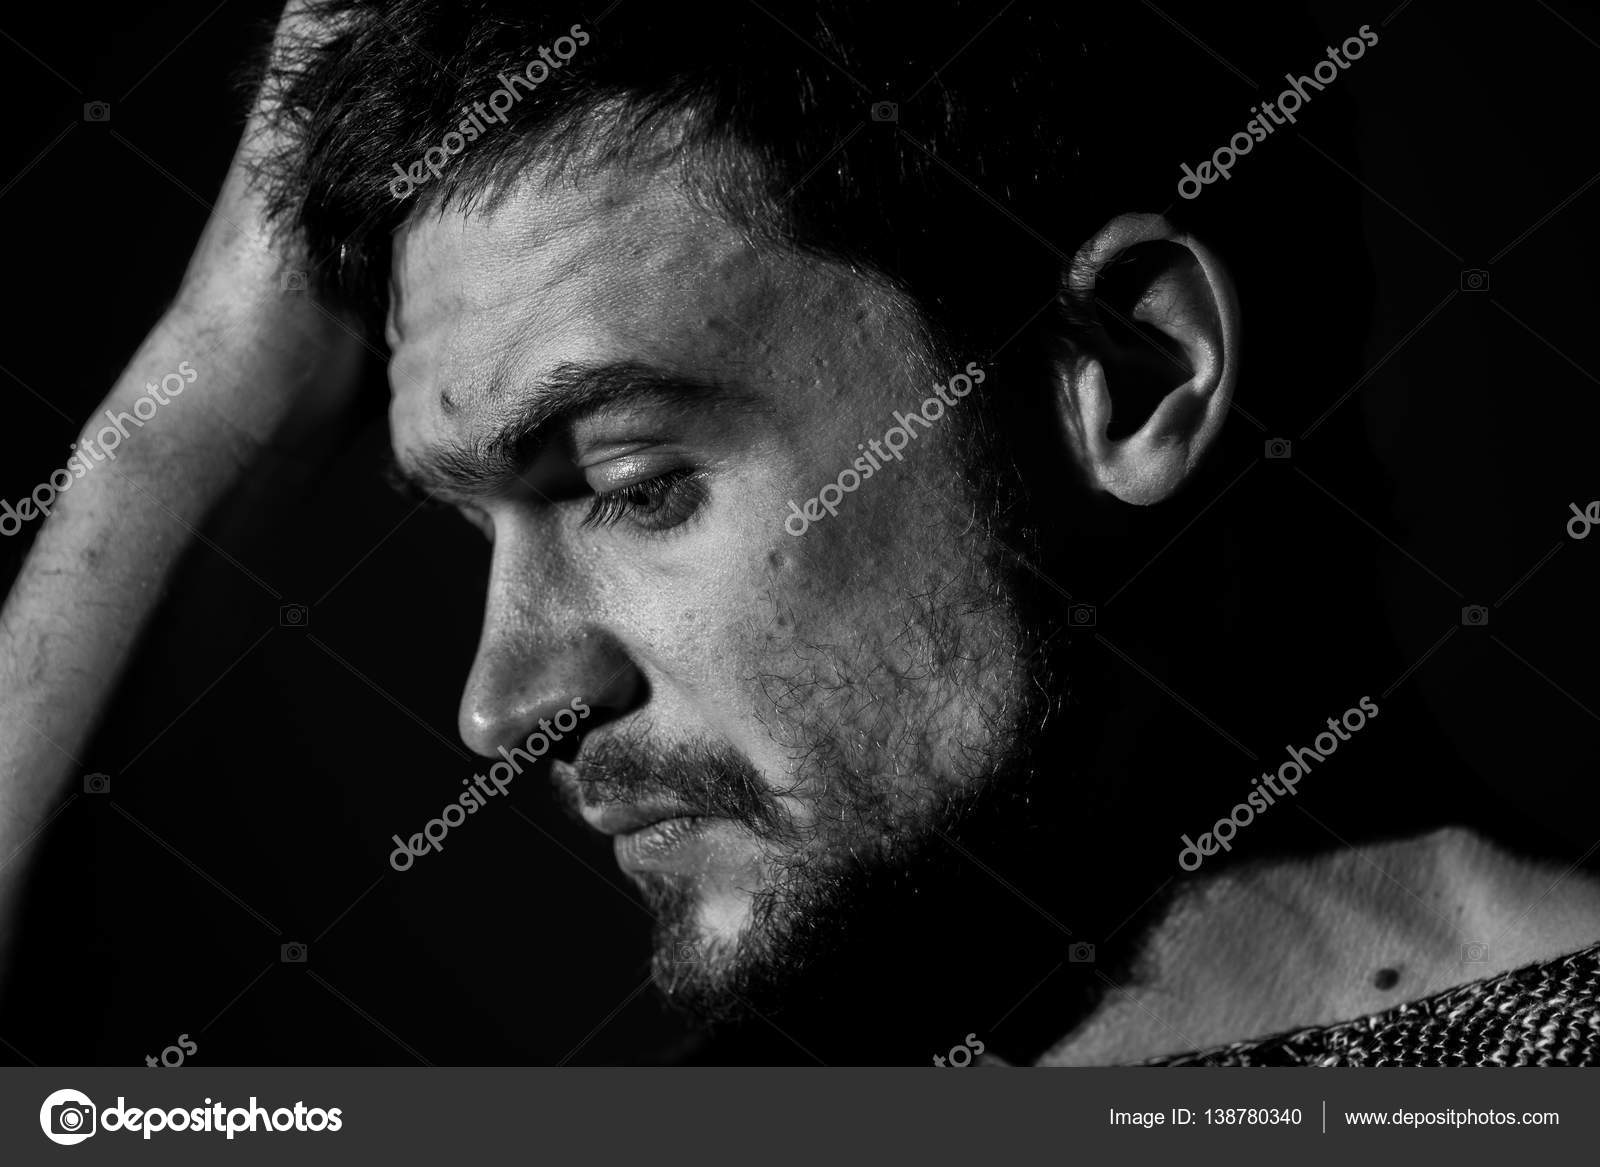 Sad young man on a dark background sad emotions black and white photography close up photo by puhimec